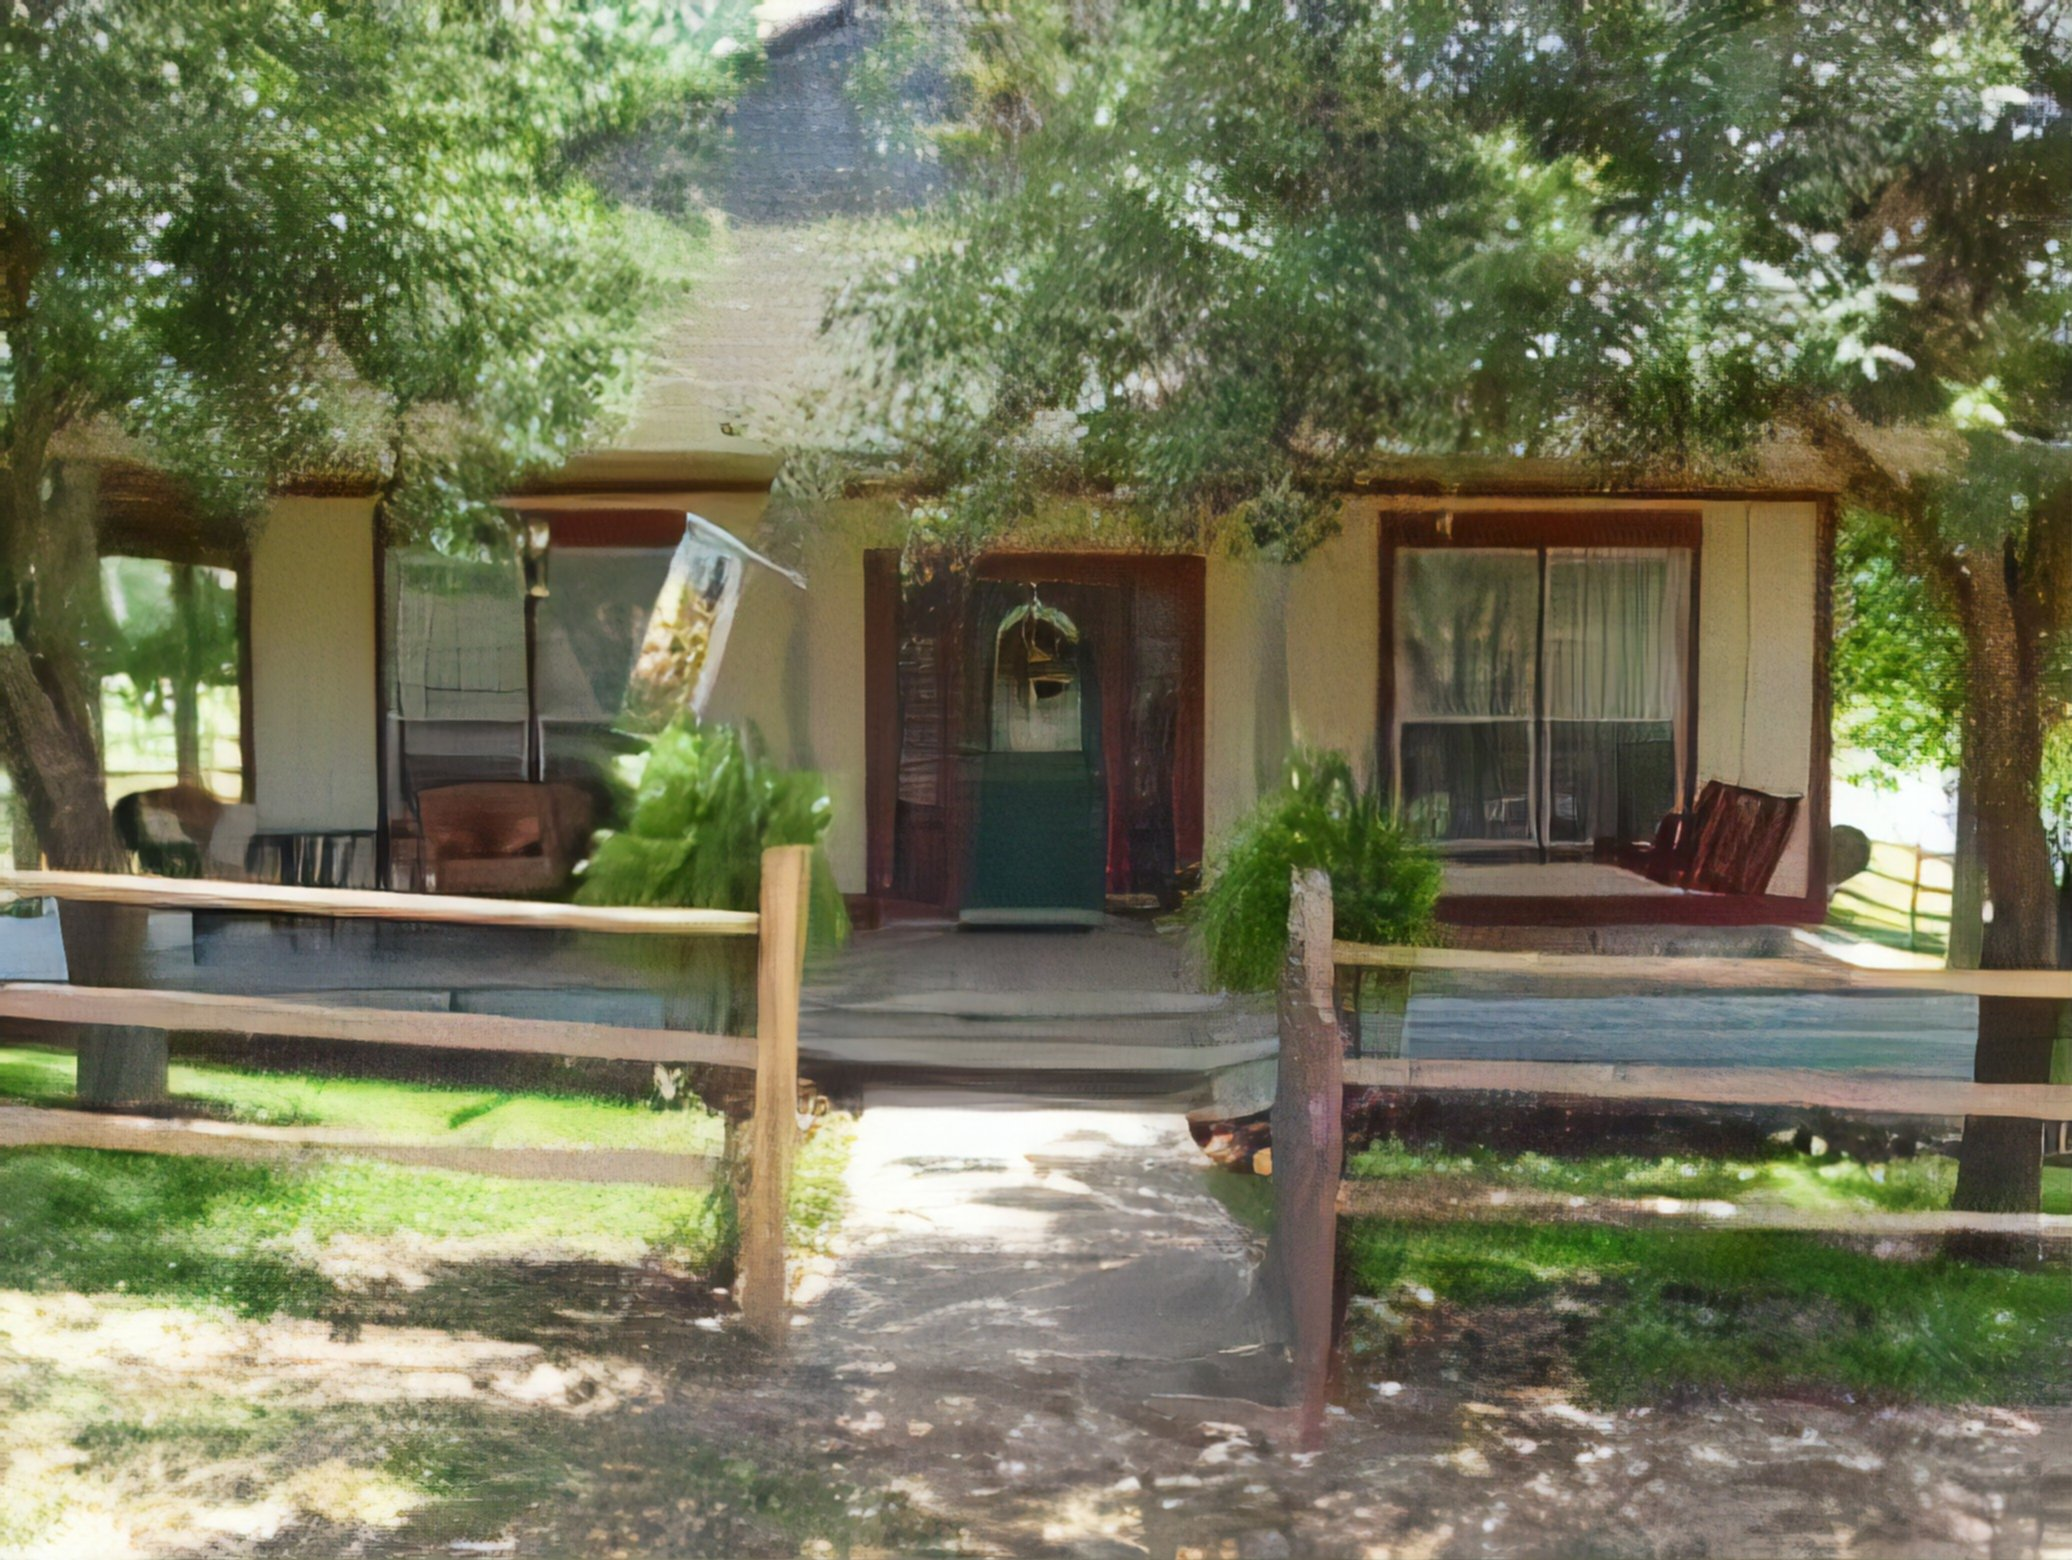 A wooden bench in front of a house at Hackberry Hill Cottages.